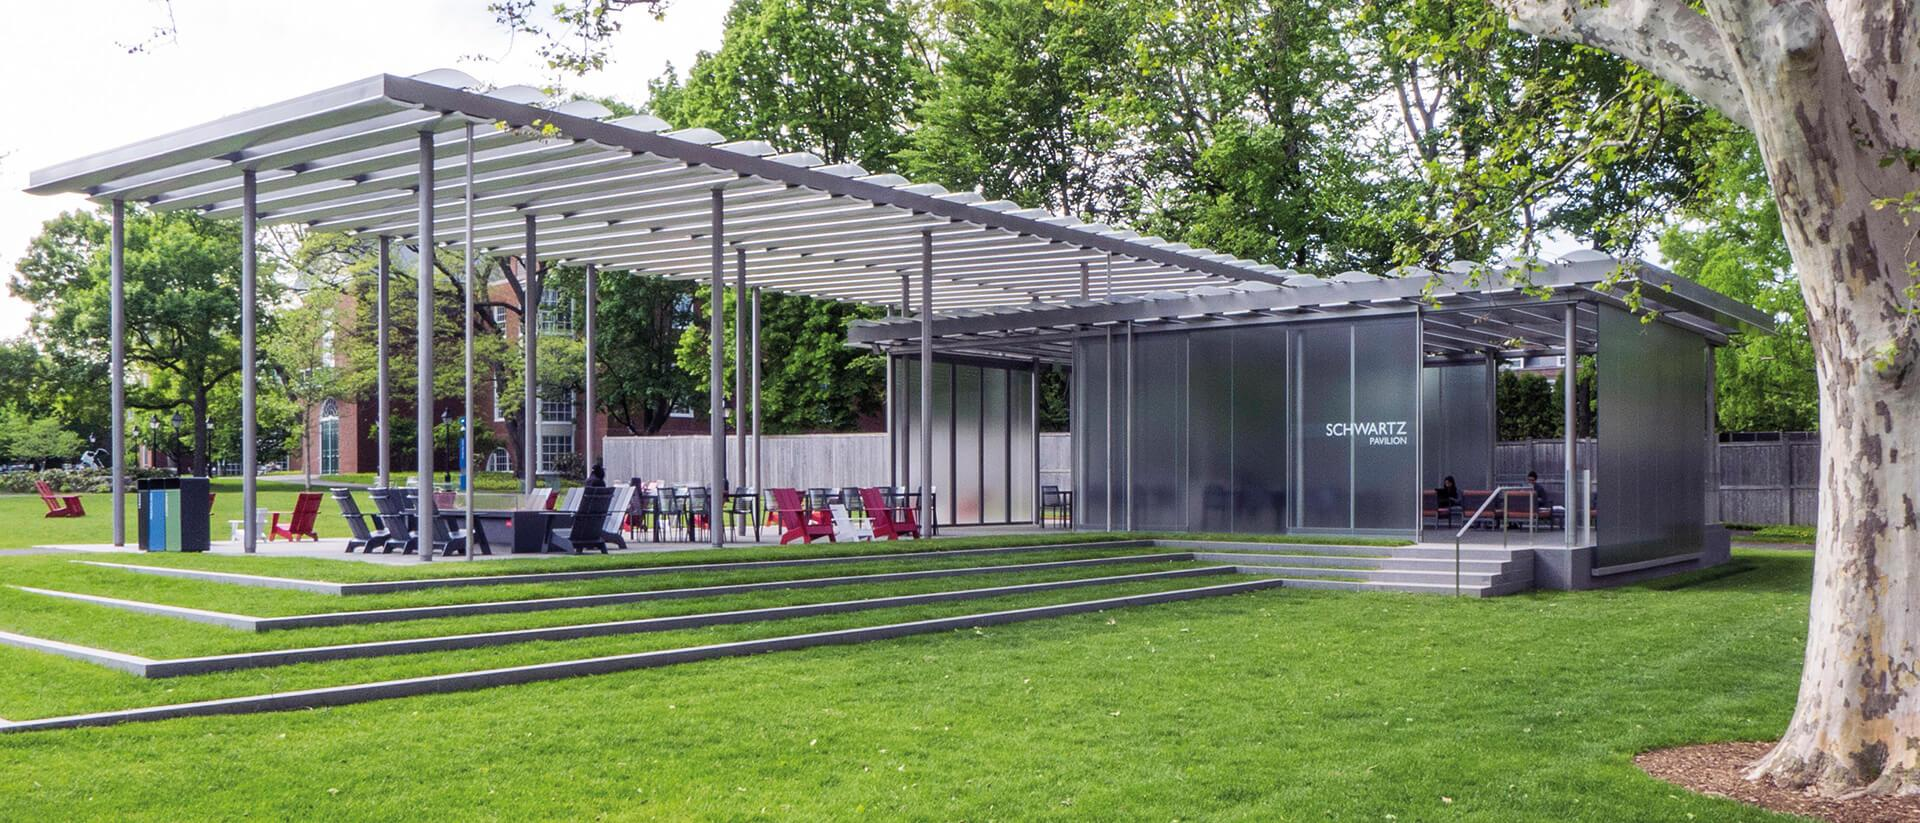 Harvard Business School - Commons Pavilion glass facade and roof